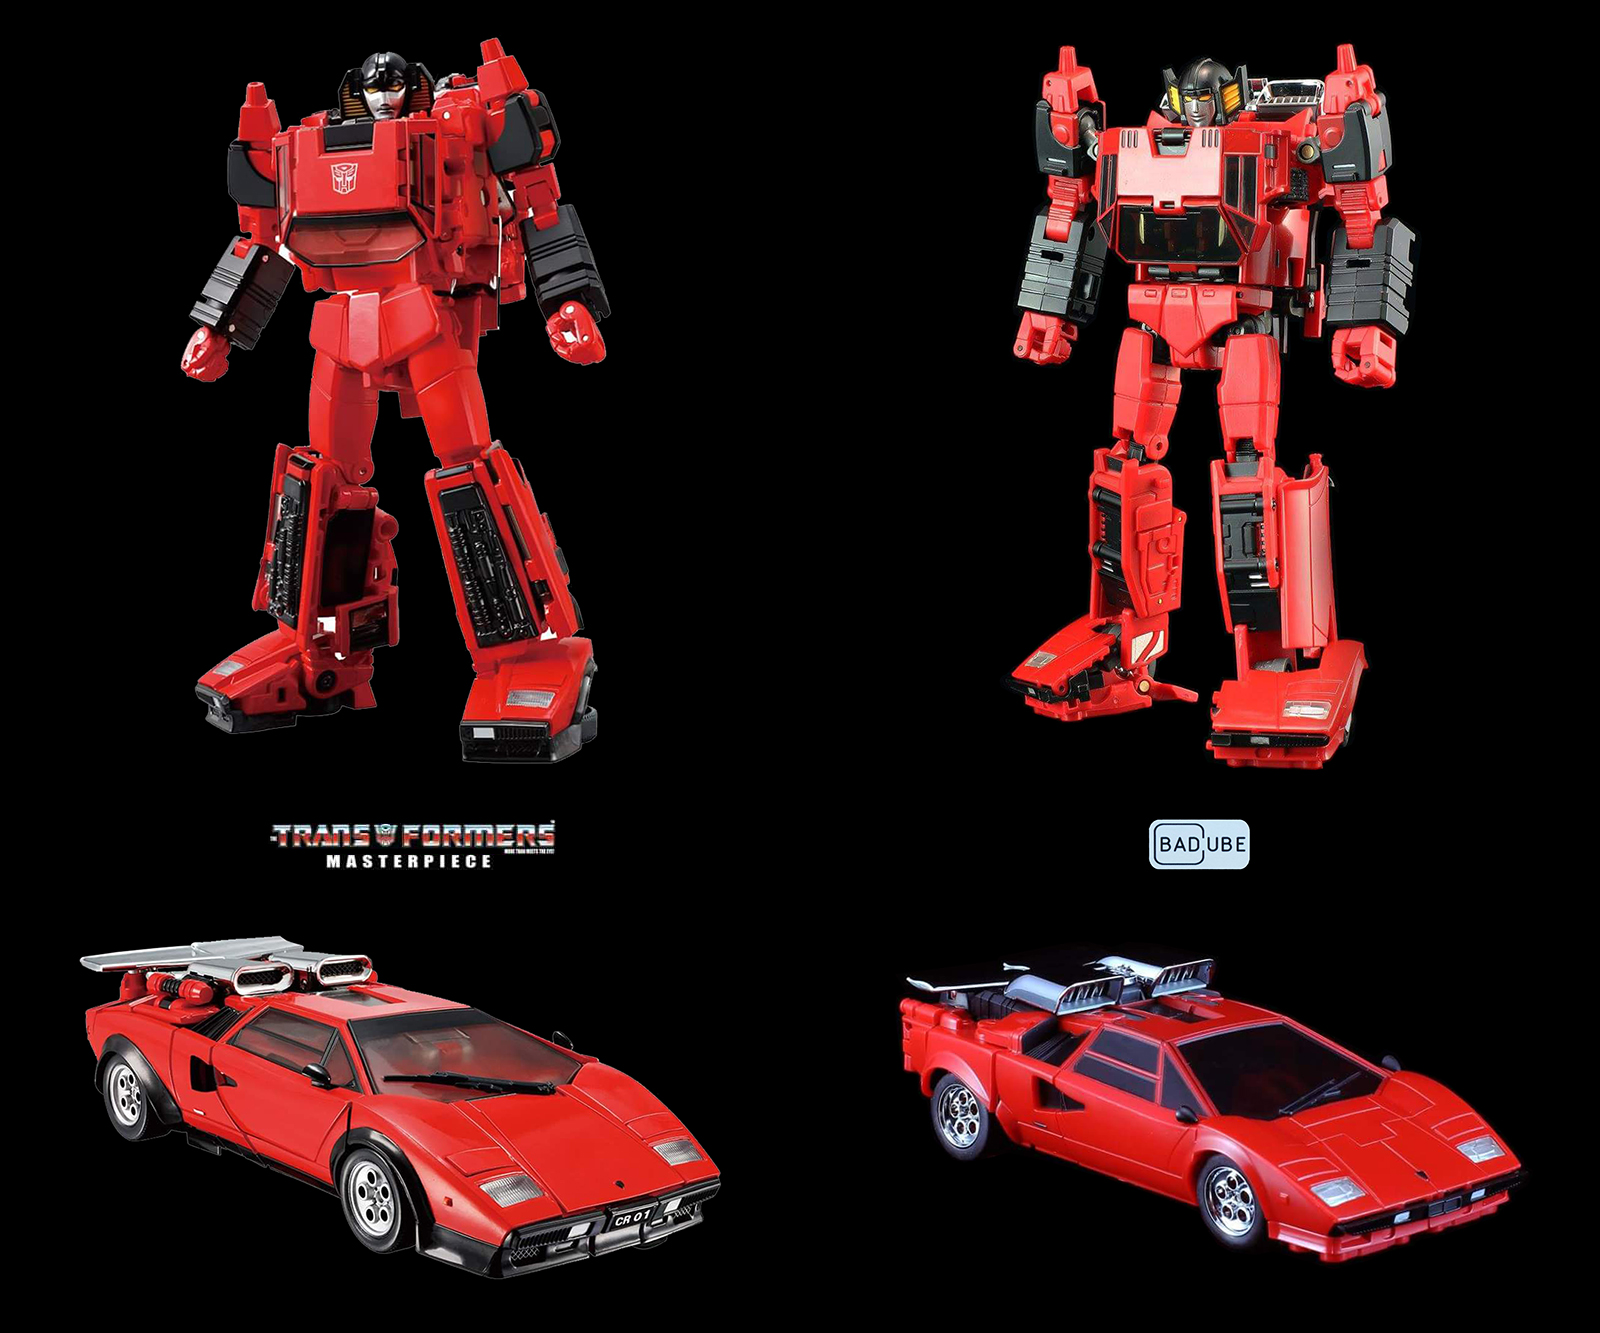 [Masterpiece] MP-39 Sunstreaker/Solo & MP-39+ Spinout/Échappé - Page 4 HkEFpaE8_o